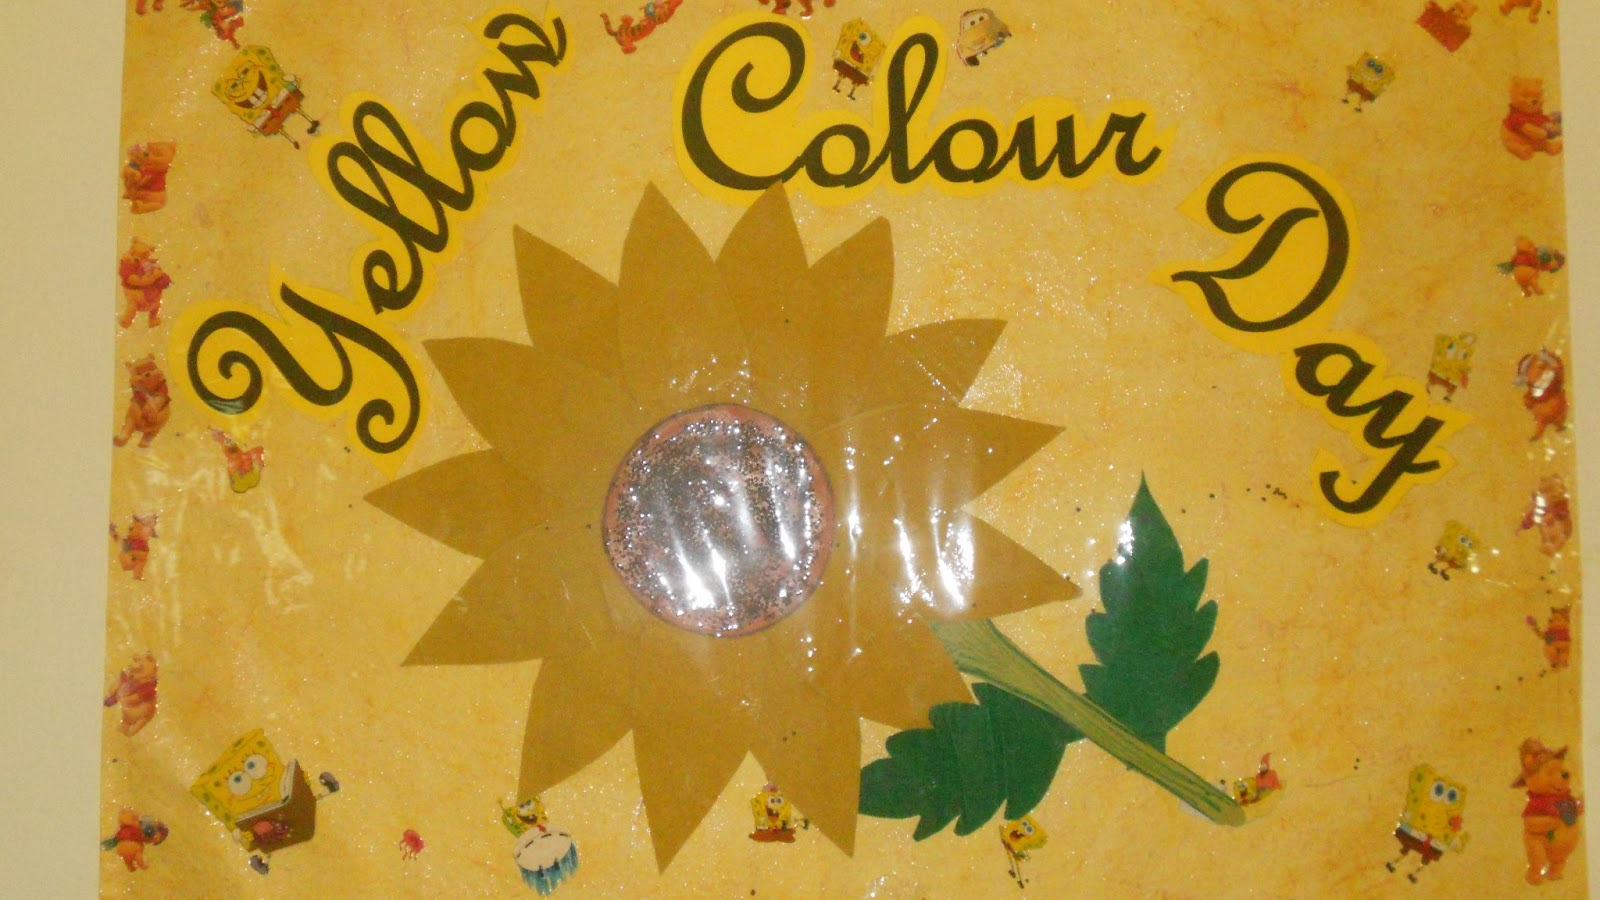 slate - the school  karmanghat  yellow colour day